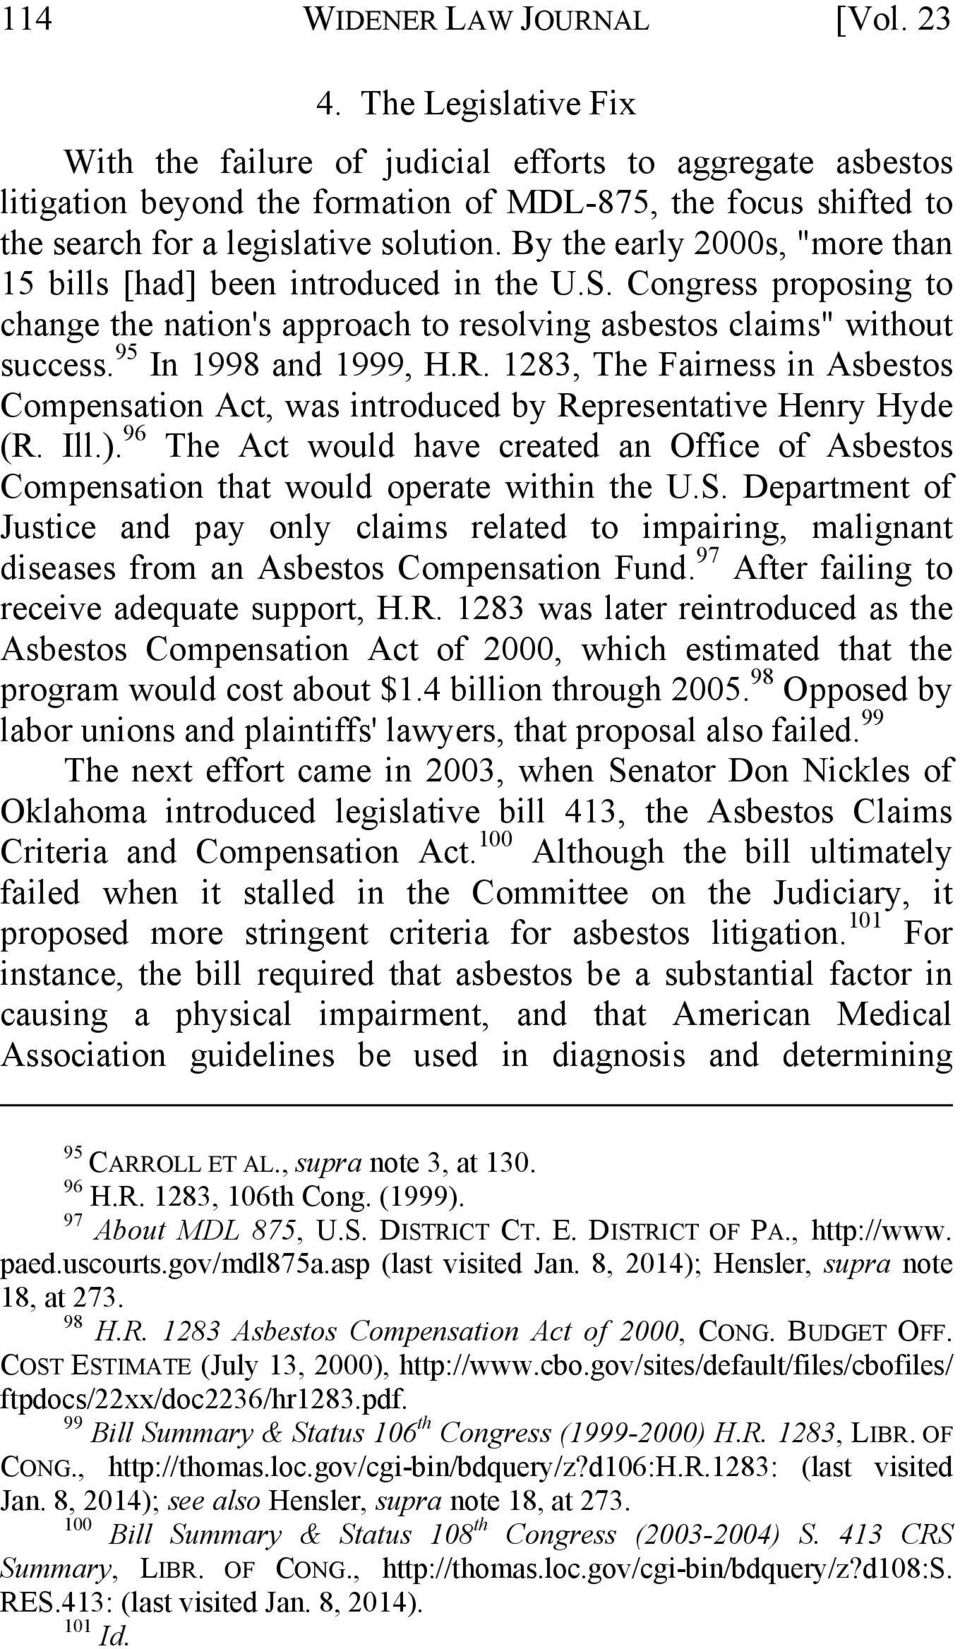 "By the early 2000s, ""more than 15 bills [had] been introduced in the U.S. Congress proposing to change the nation's approach to resolving asbestos claims"" without success. 95 In 1998 and 1999, H.R."